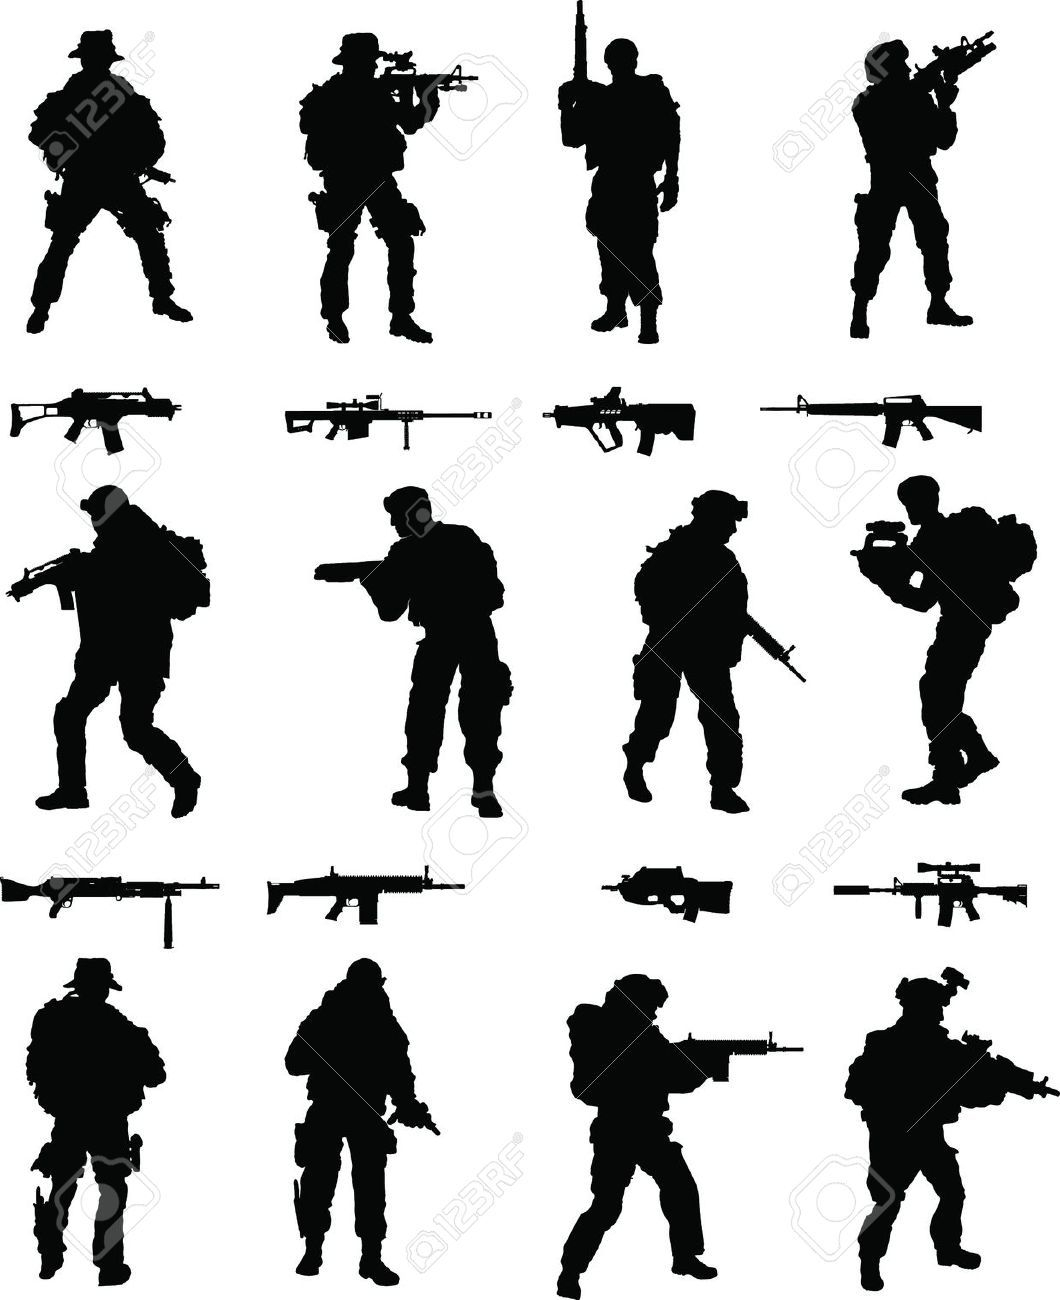 Silhouettes Military Cliparts, Stock Vector And Royalty Free.